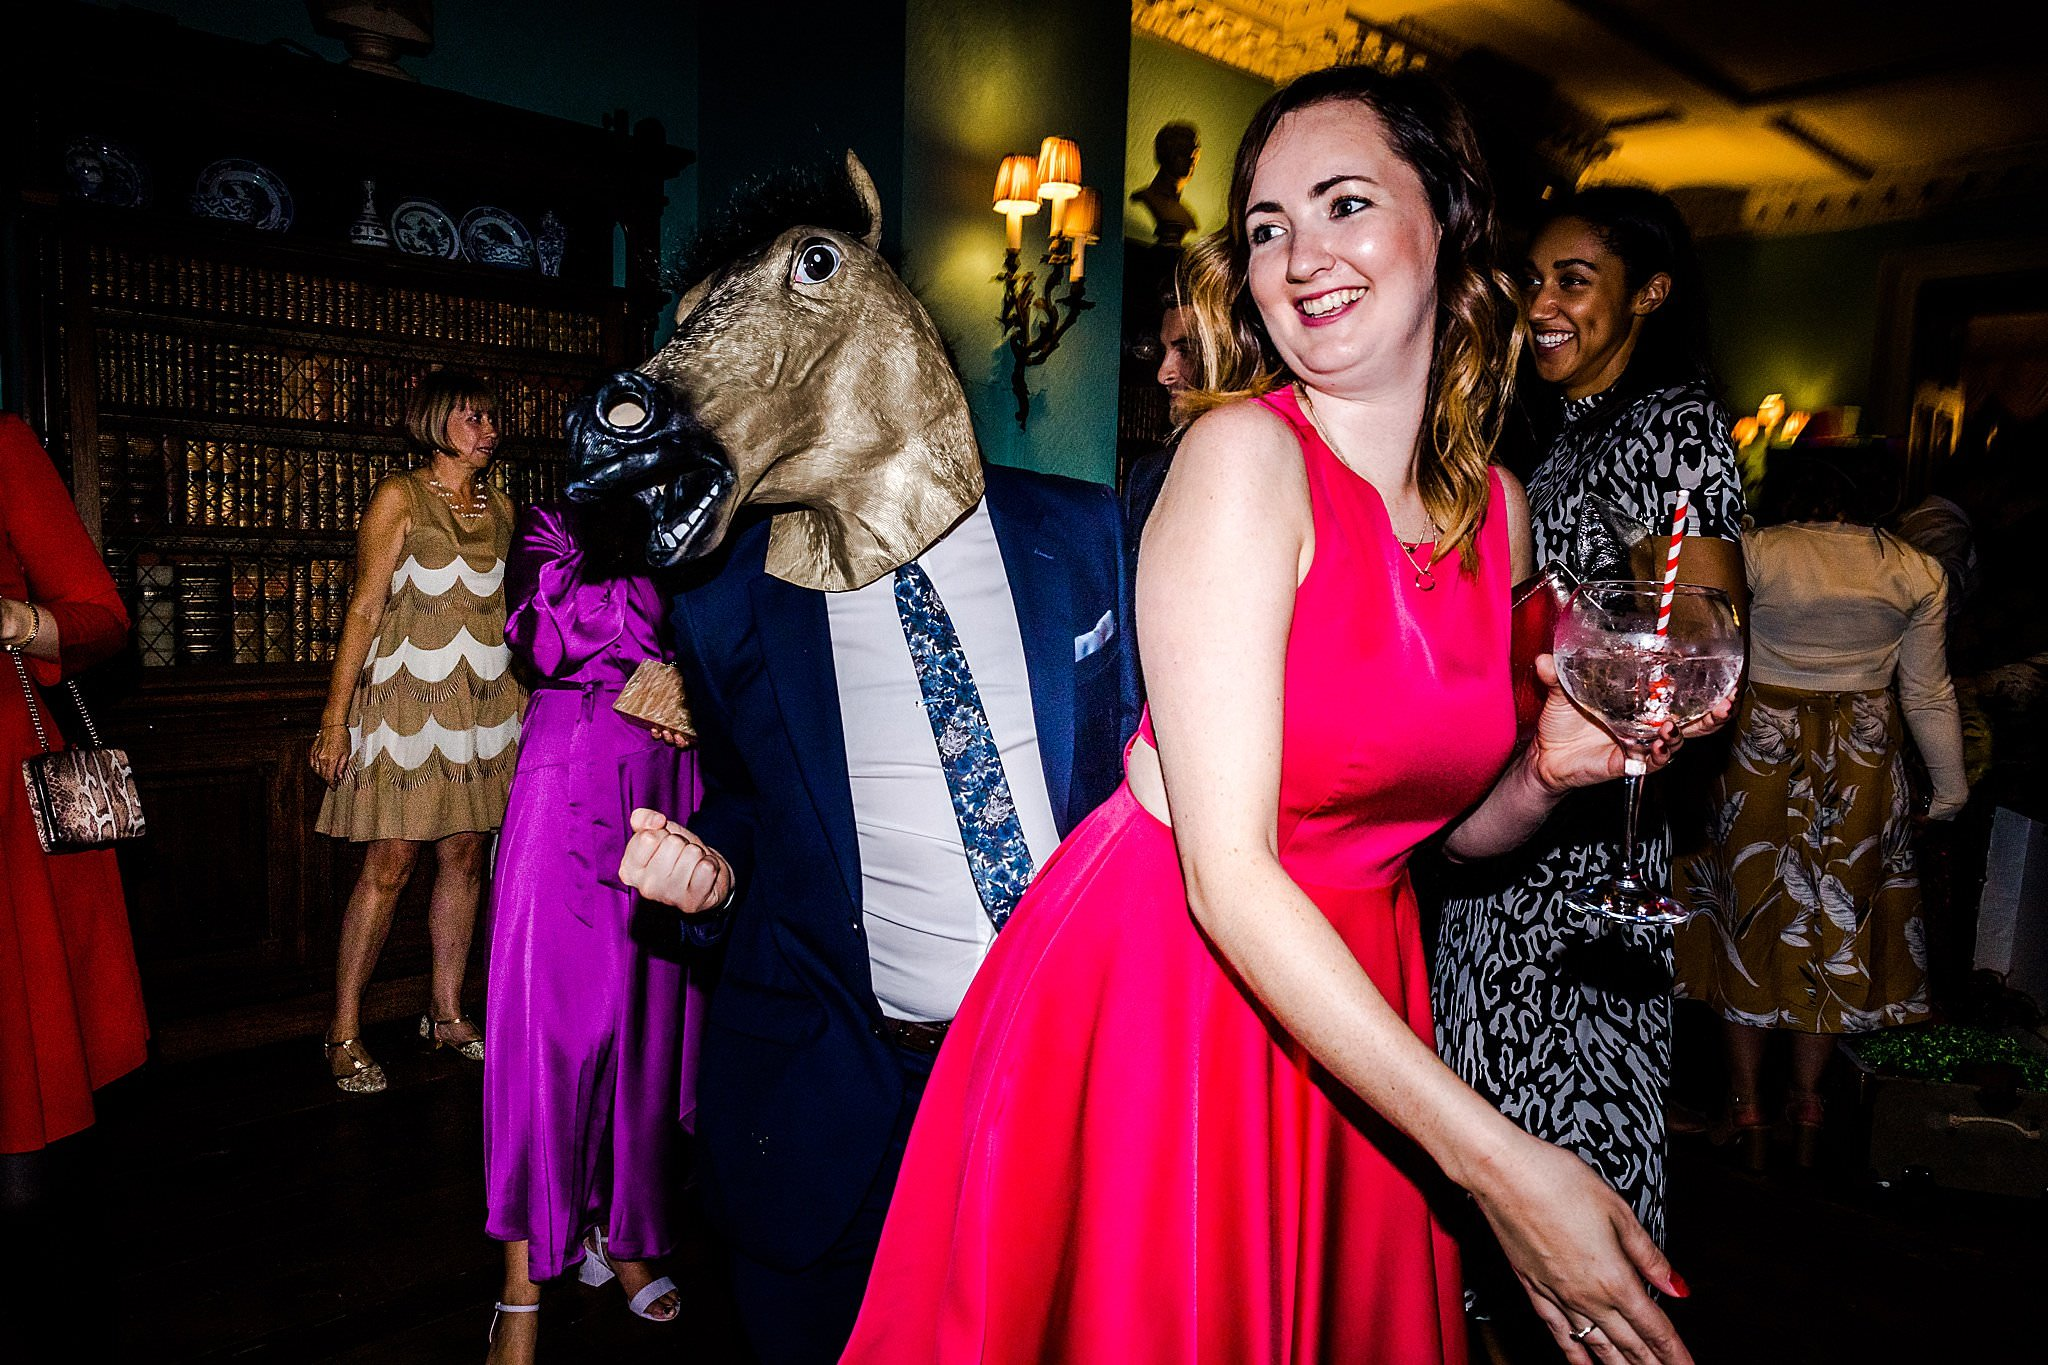 Wedding guest with a horse head mask on dances with another guest at a wedding at Prestwold Hall